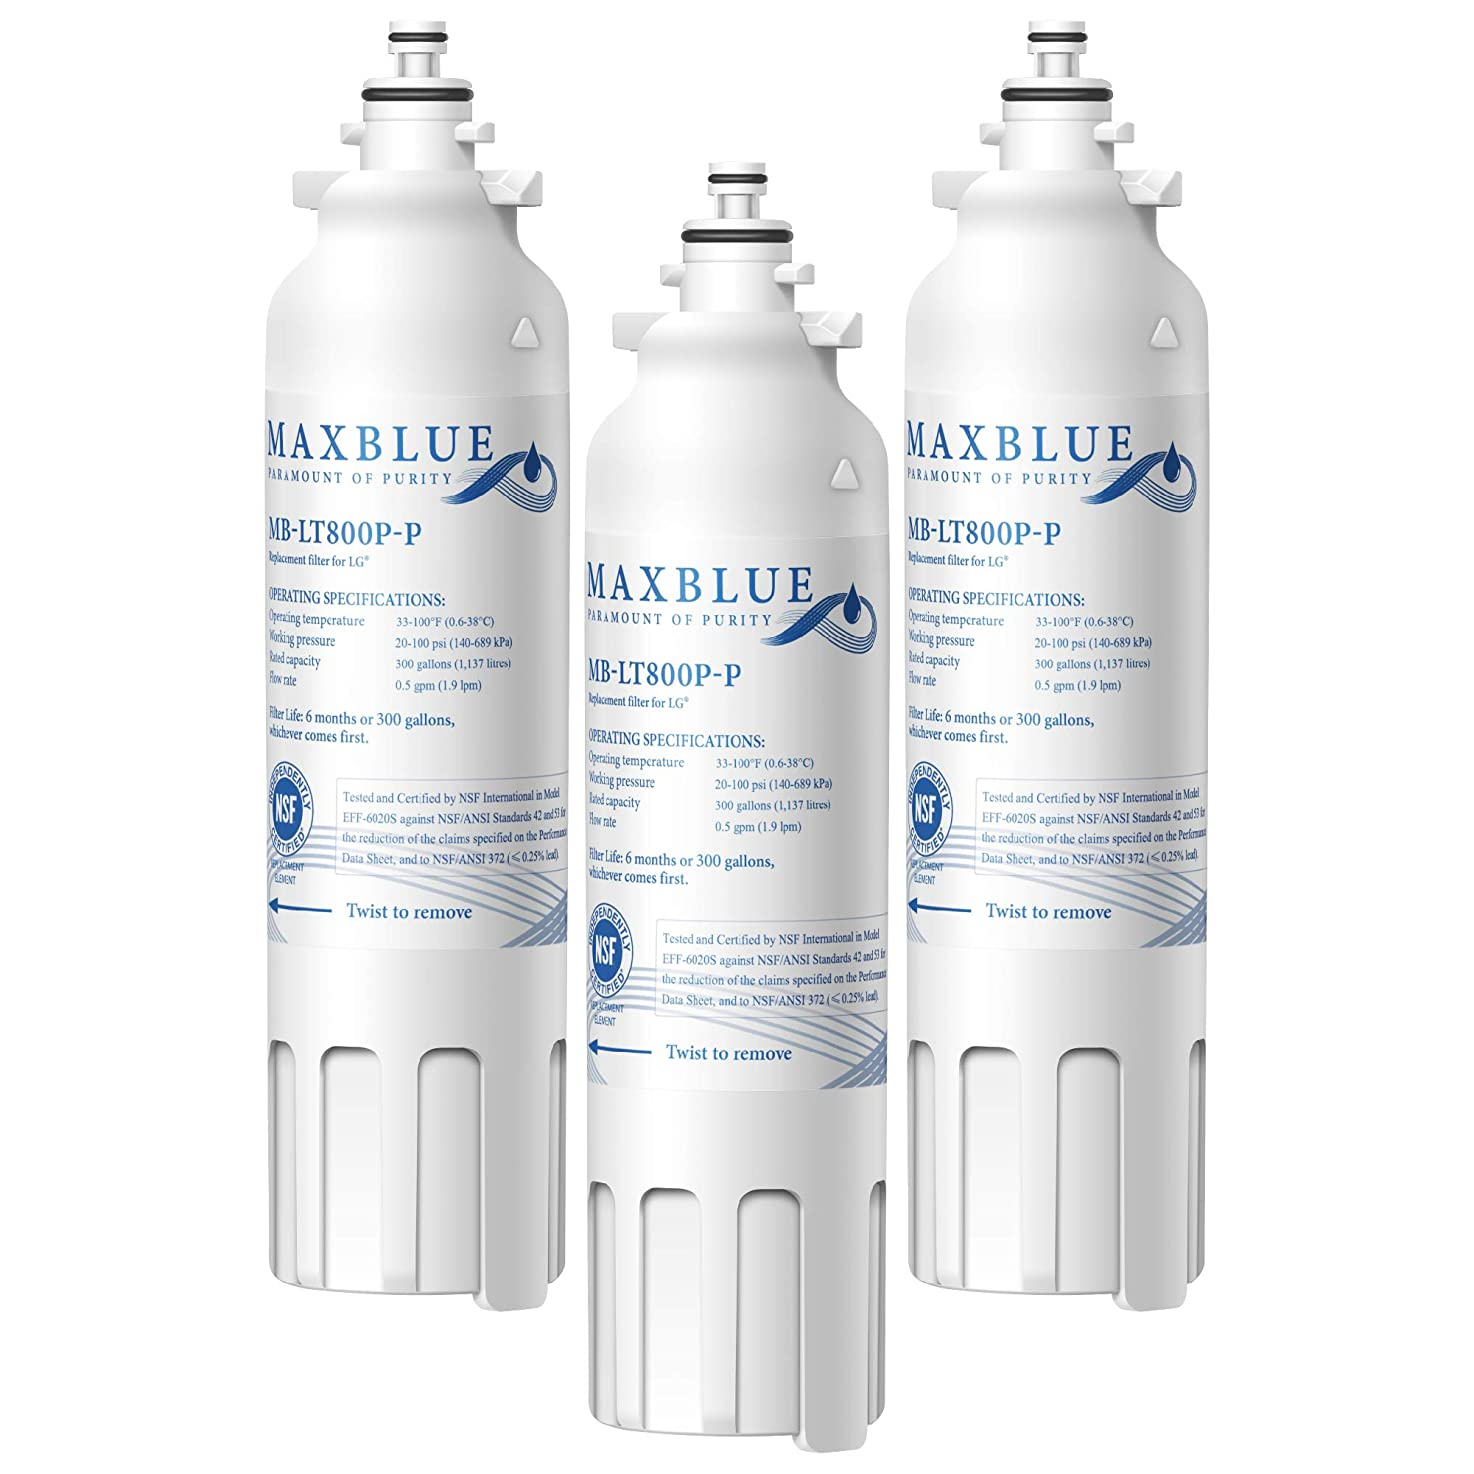 Max blue NSF 53&42 Certified ADQ73613401 Refrigerator Water Filter, Replacement for LG LT800P, Kenmore 9490, LSXS26326S, LMXC23746S, WF-LT800P, 469490, LMXC23746D, ADQ73613402, Pack of 3